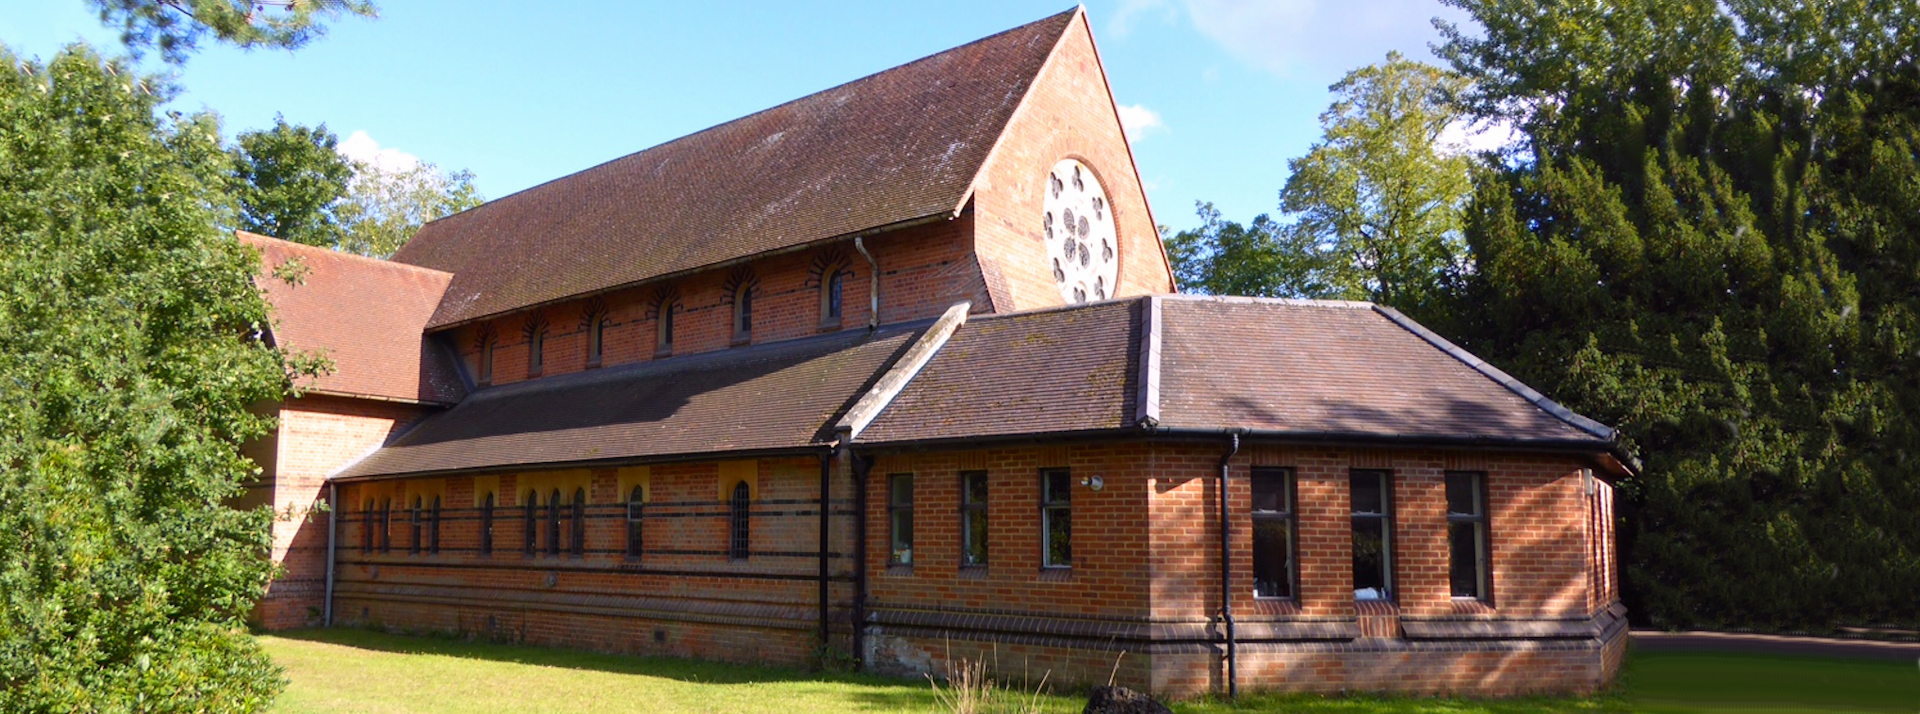 St Mark's Church, Binfield, Berkshire